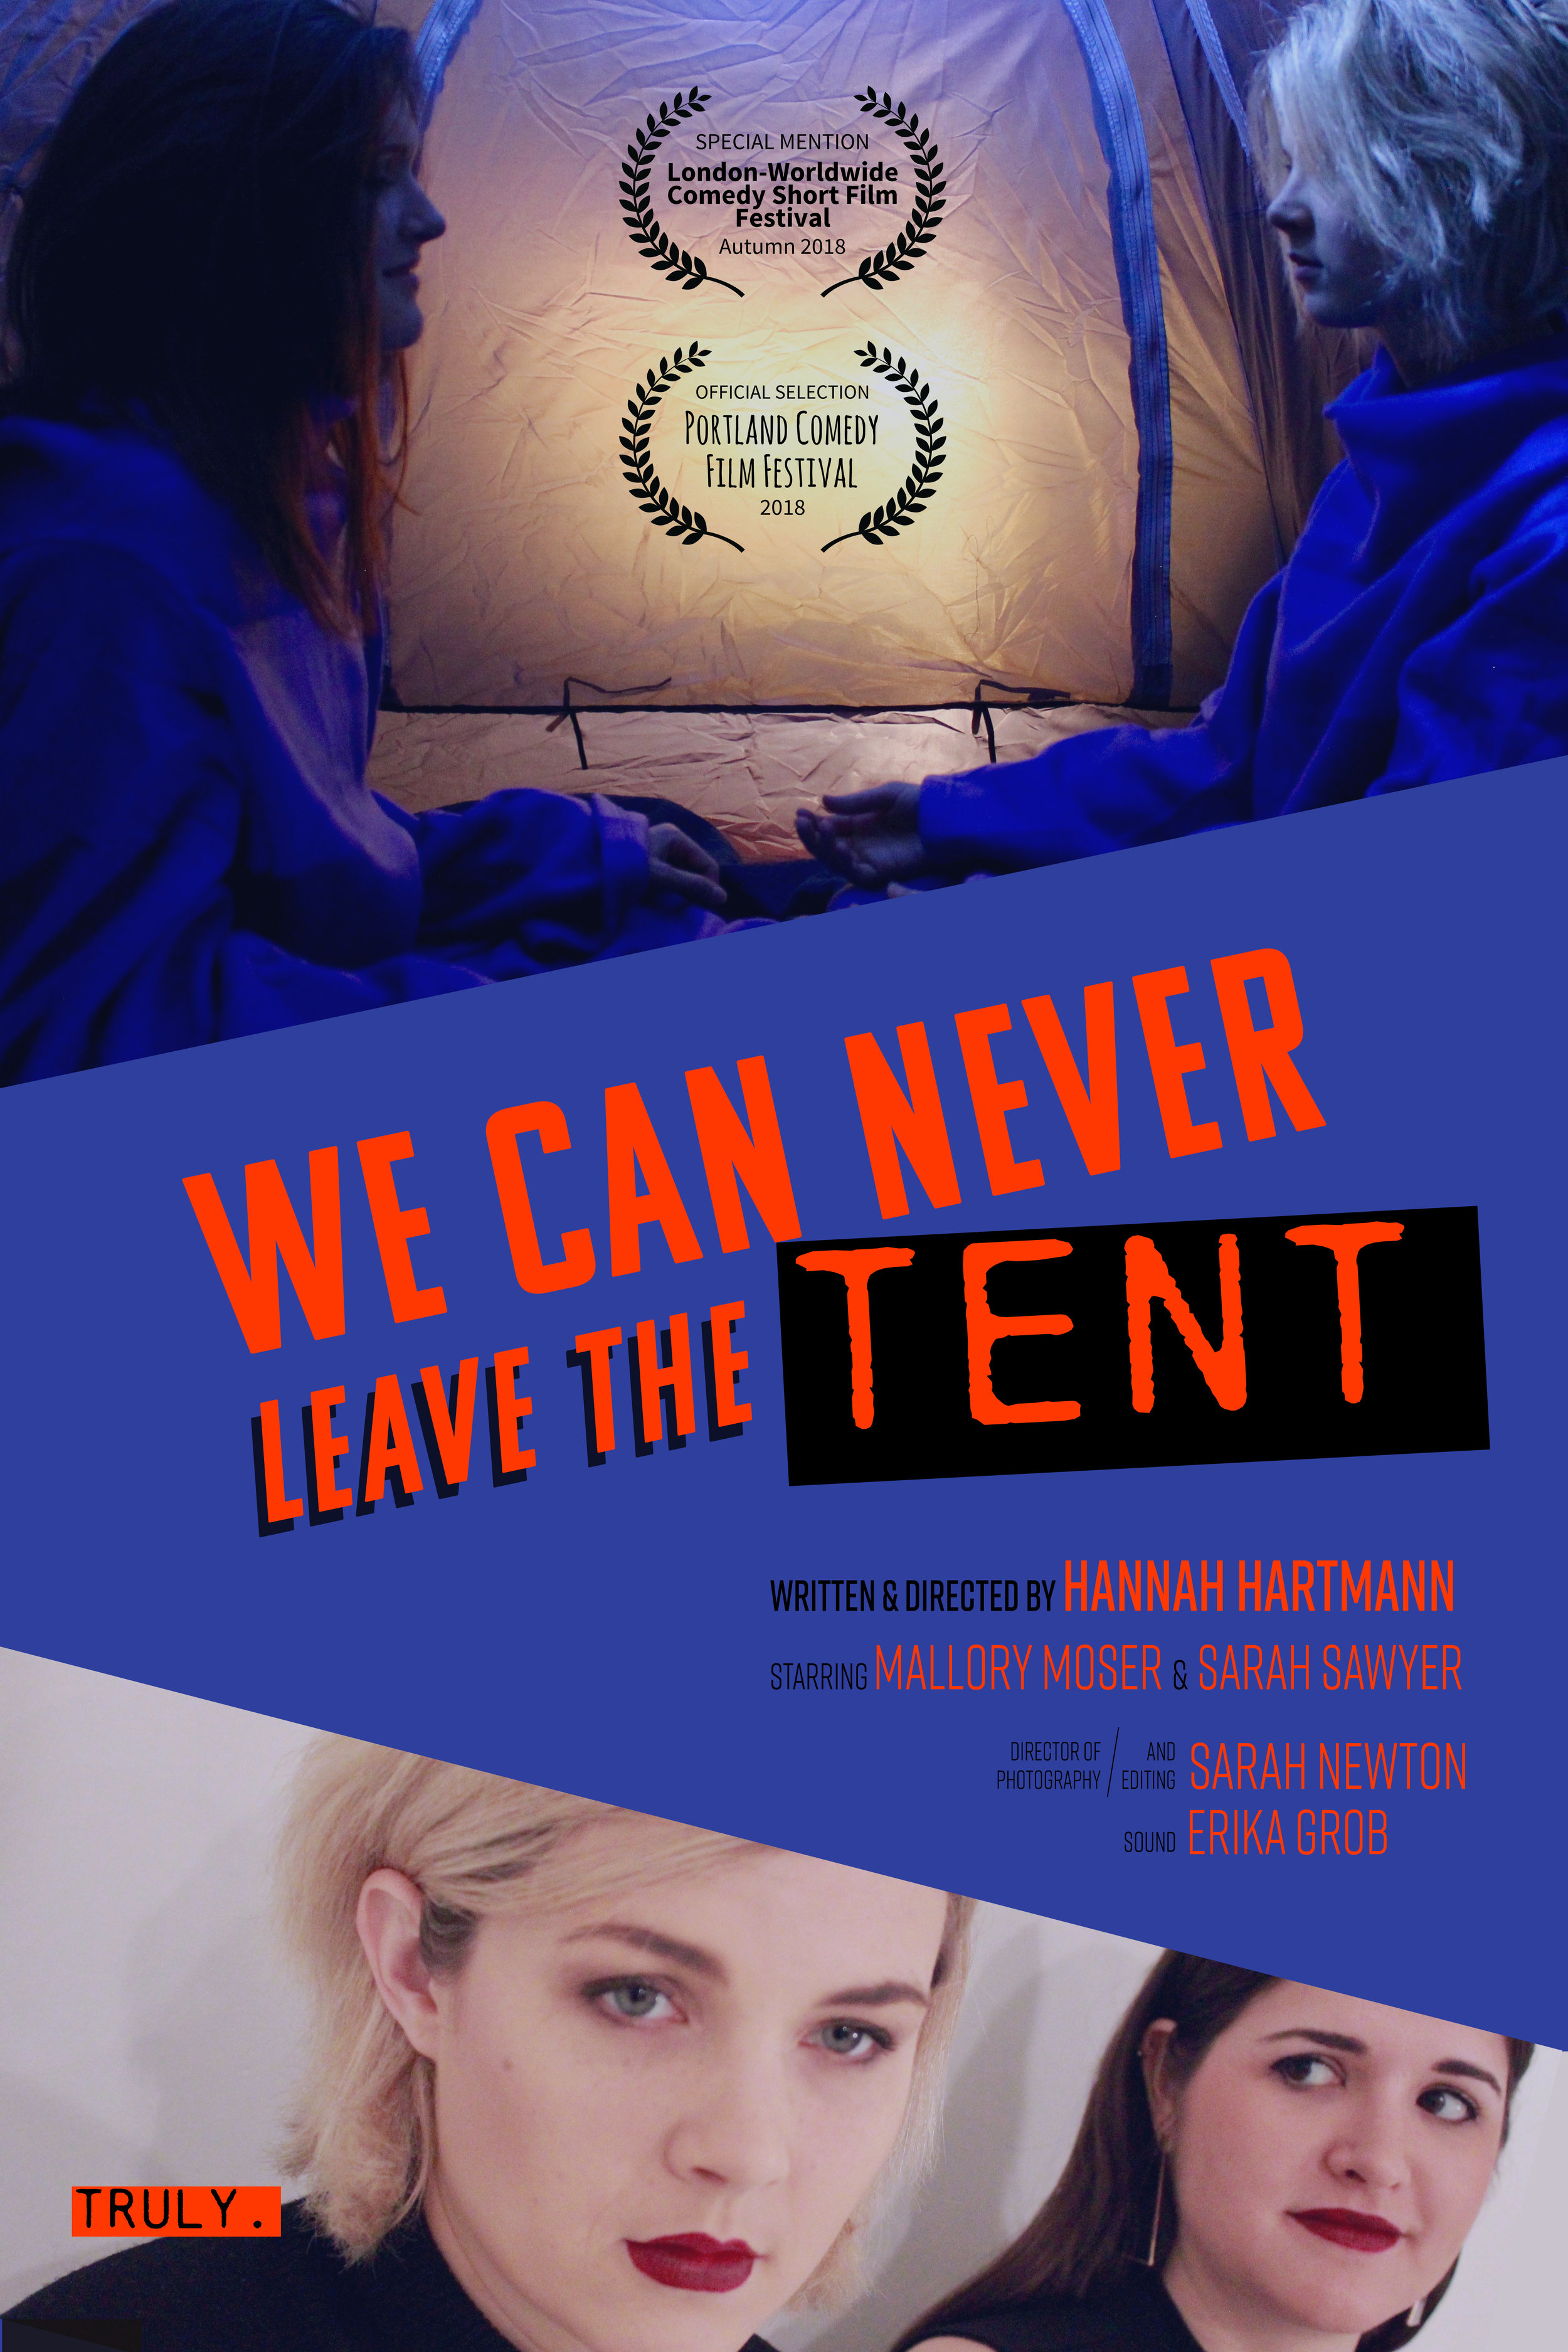 We Can Never Leave the Tent.Poster.jpg